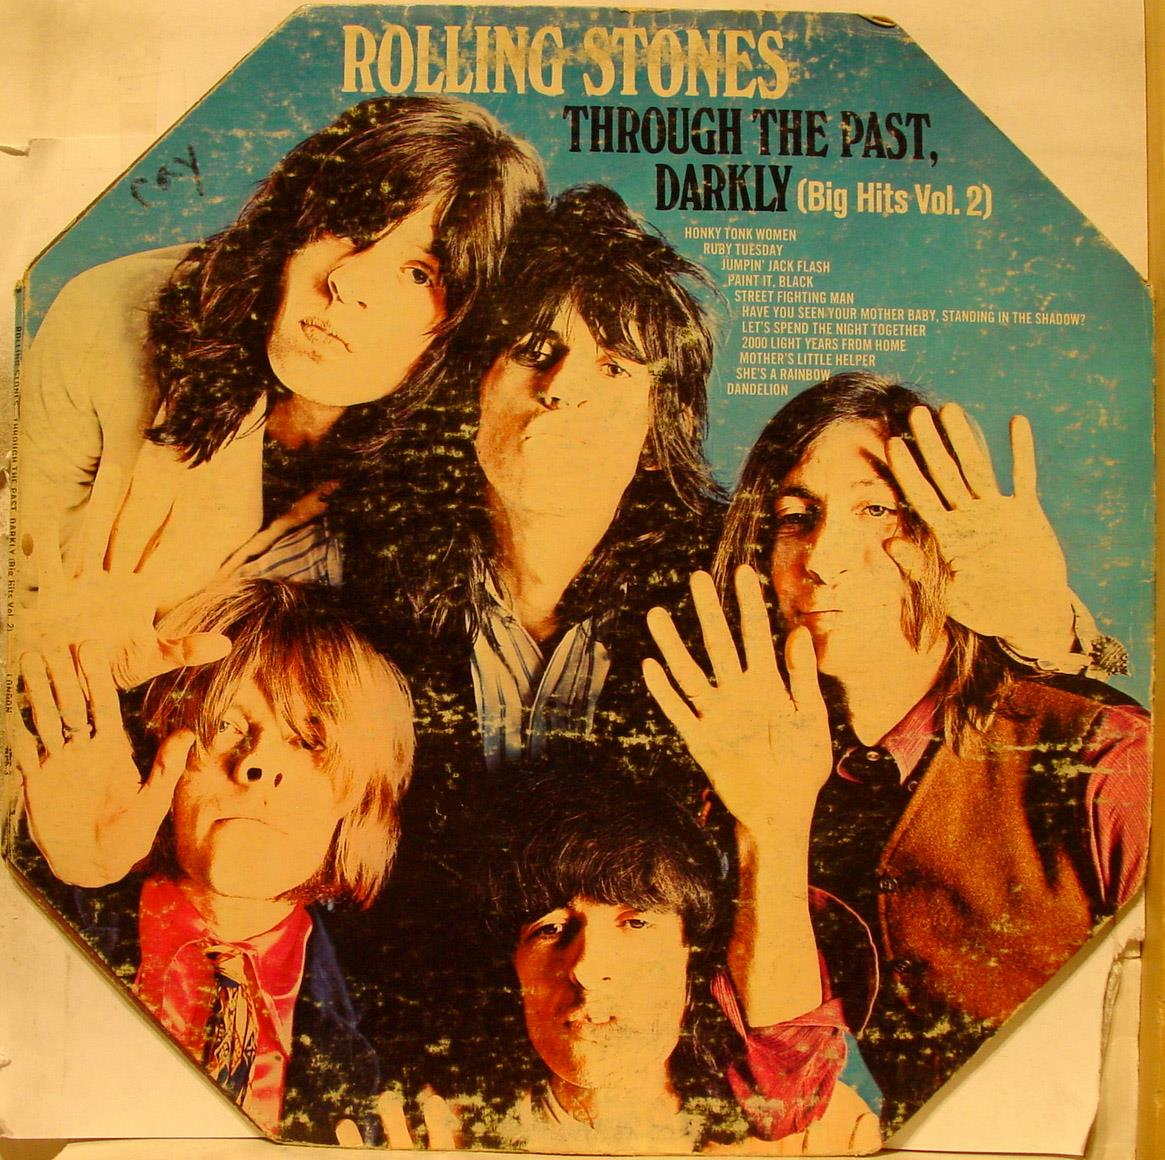 ROLLING STONES - Rolling Stones Through The Past Darkly Lp Vg Nps-3 Bell Sound 1969 Record (through The Past Darkly)